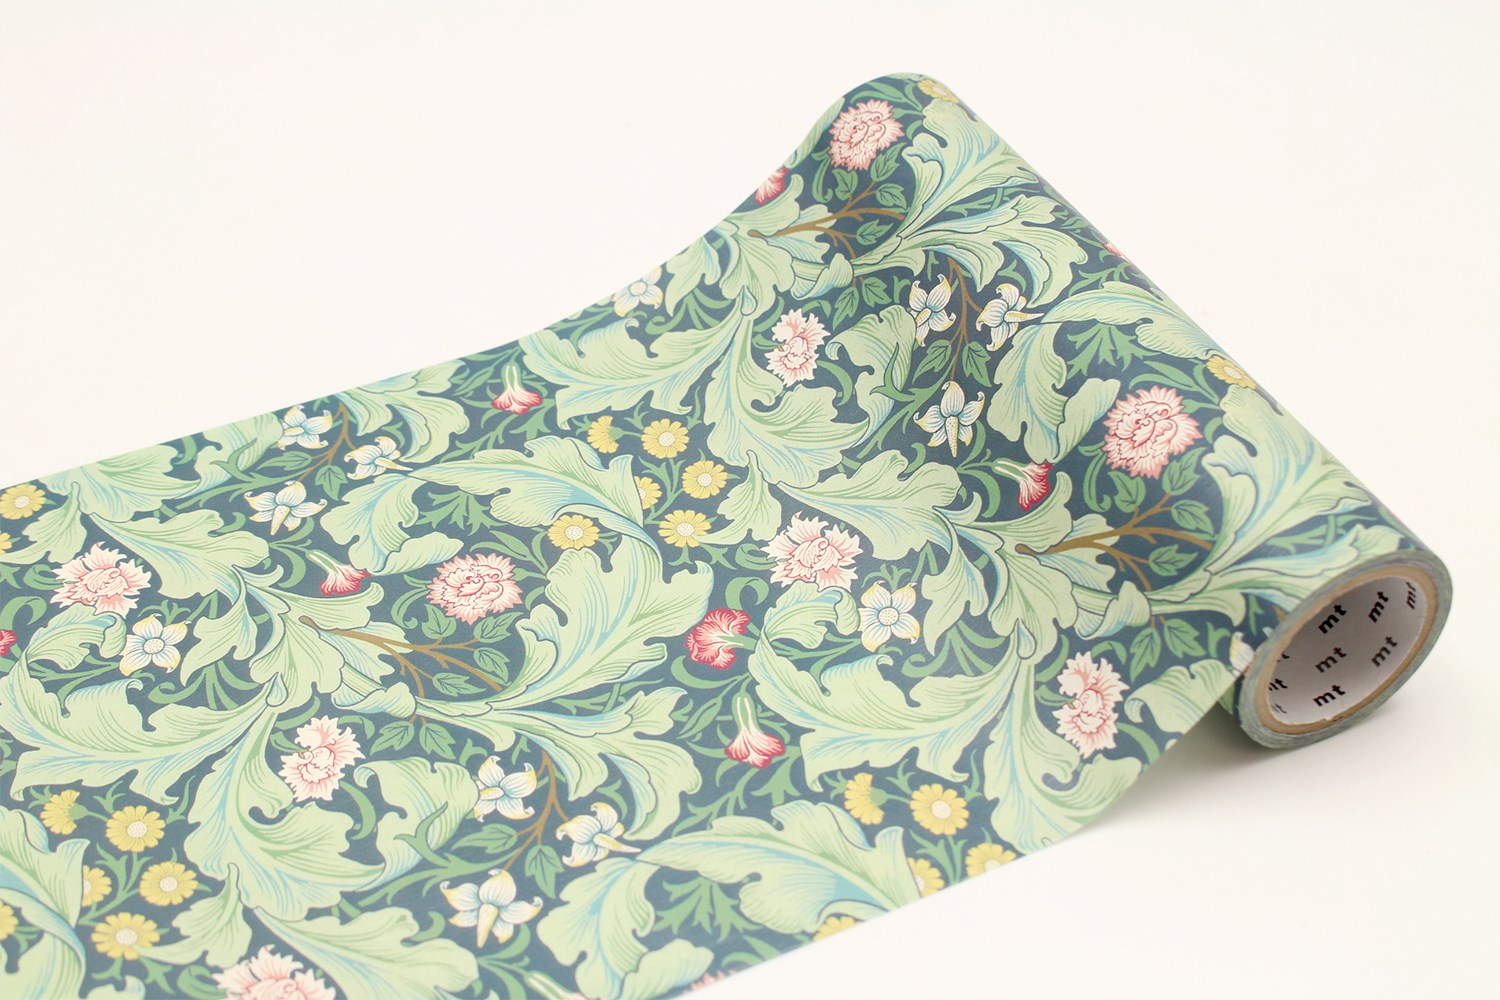 mt-washi-masking-tape-mt-wrap-small-william-morris-leicester-MTWRMI57-2.JPG